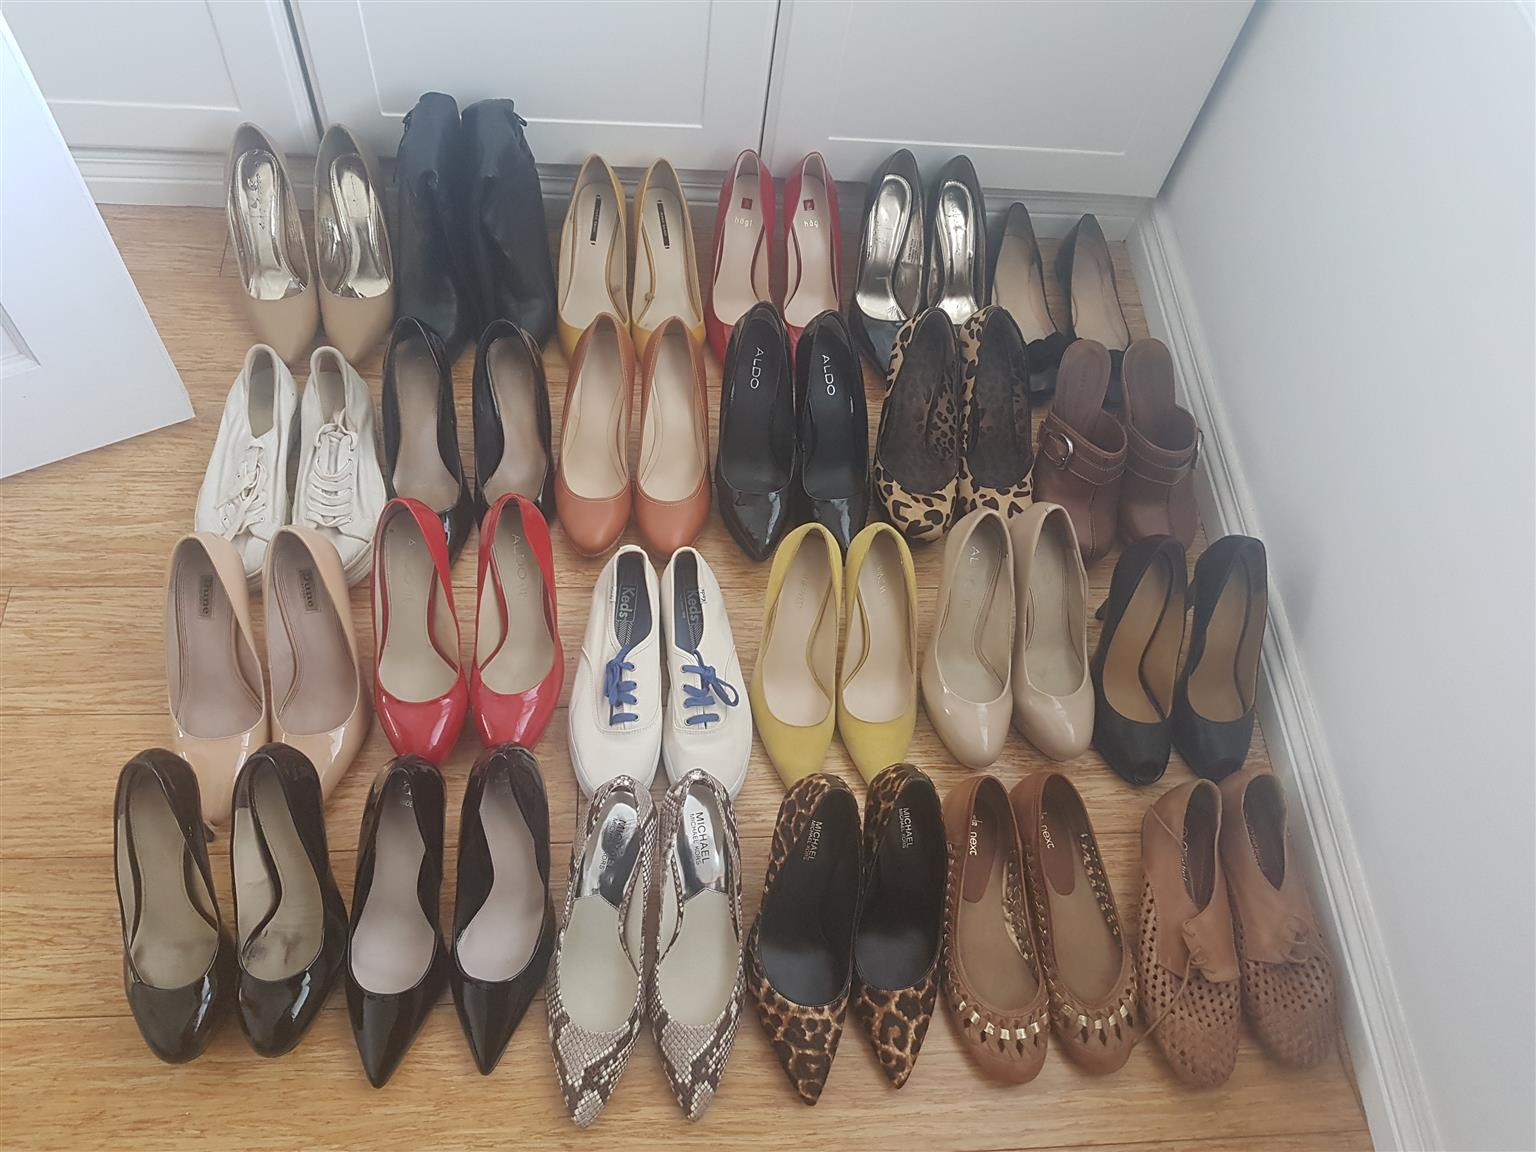 24 pairs of shoes for sale